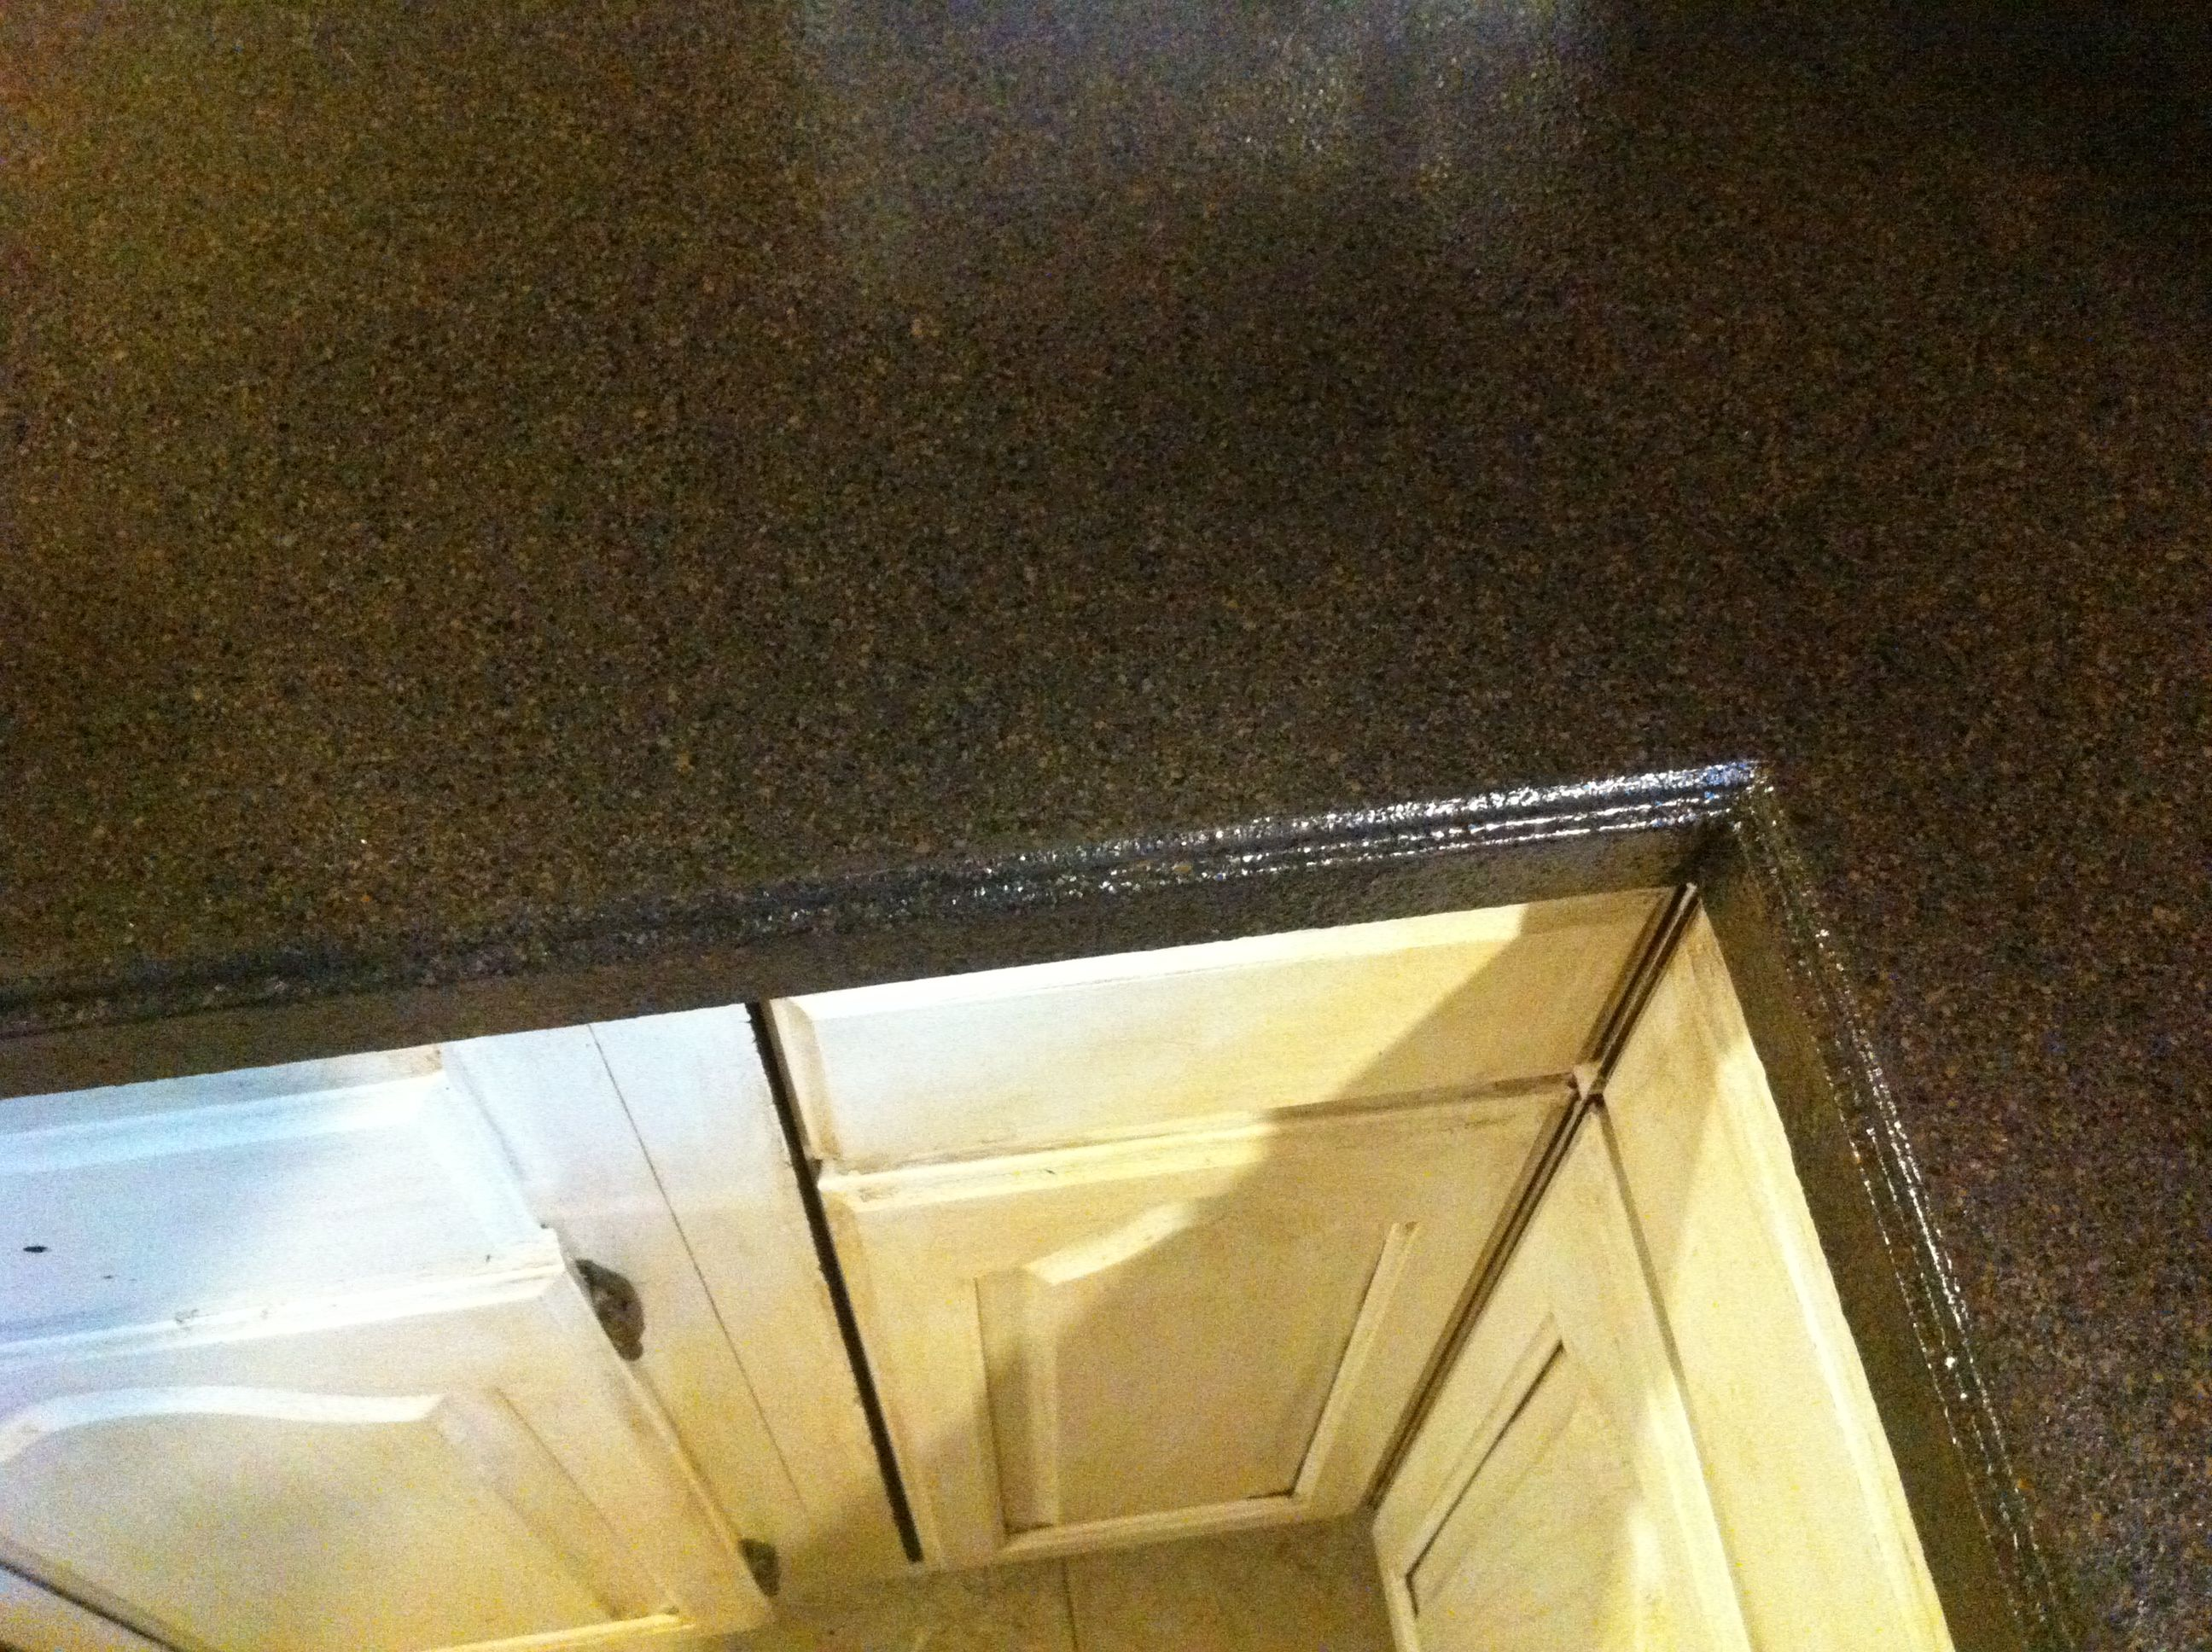 Counter Transformation Done With Rust Oleum Countertop Transformations Kit In Java Stone Much Better